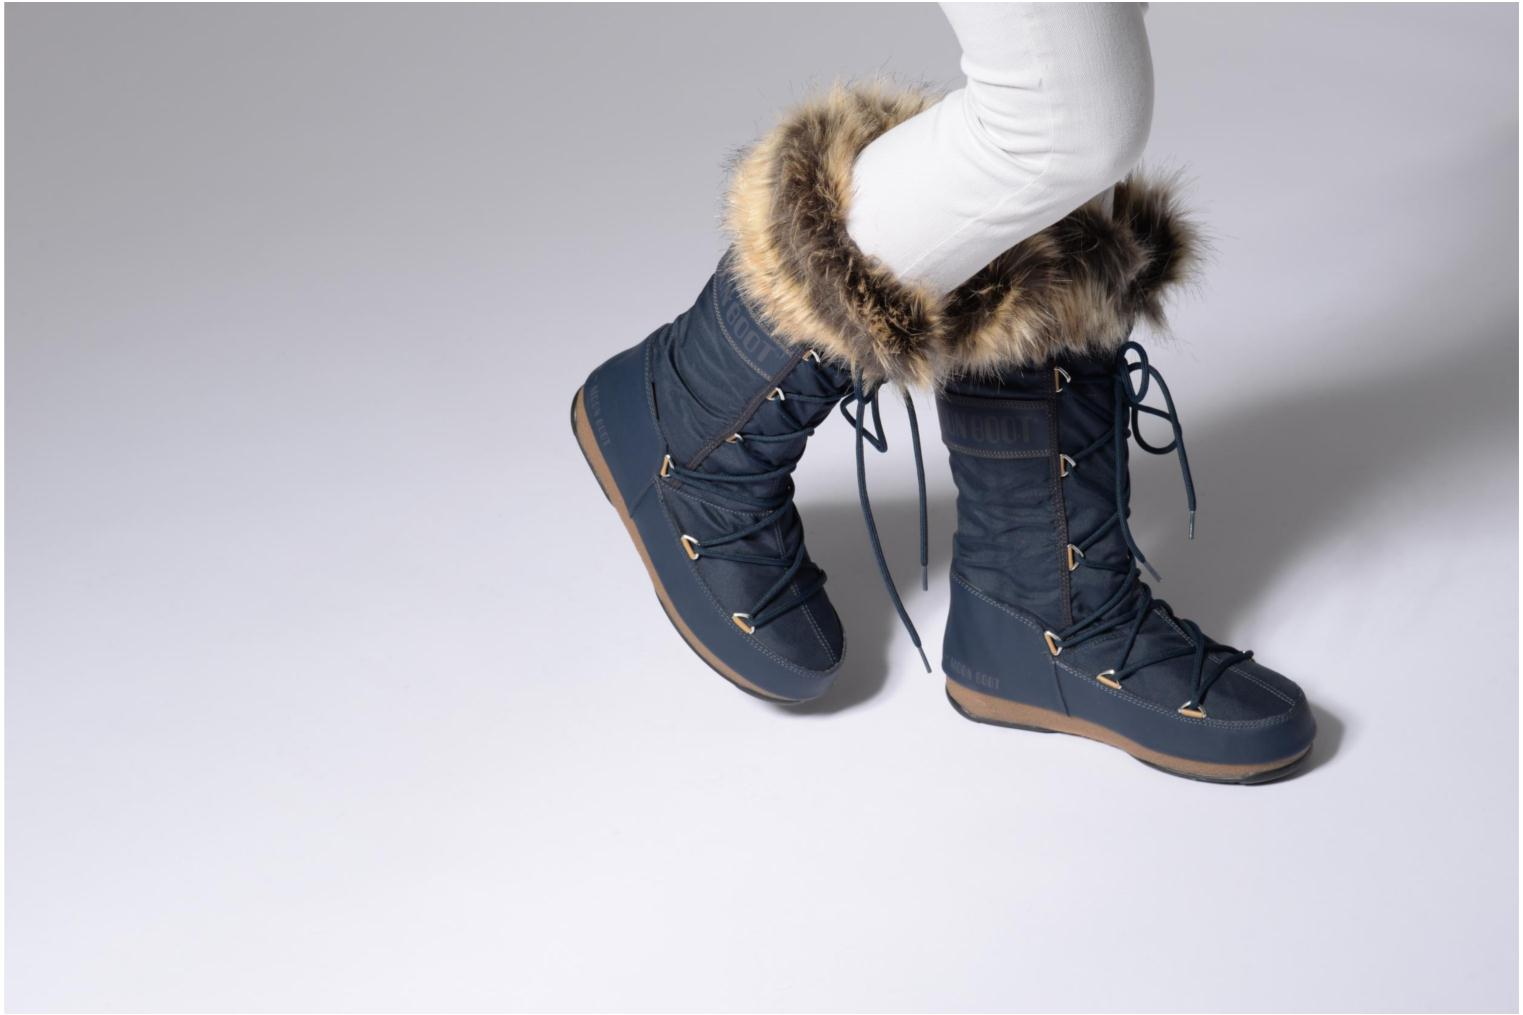 Monaco blue Moon Moon Denim Monaco Boot Monaco Moon blue Boot Denim Boot Denim Moon Monaco Denim blue Boot EwO7nAq